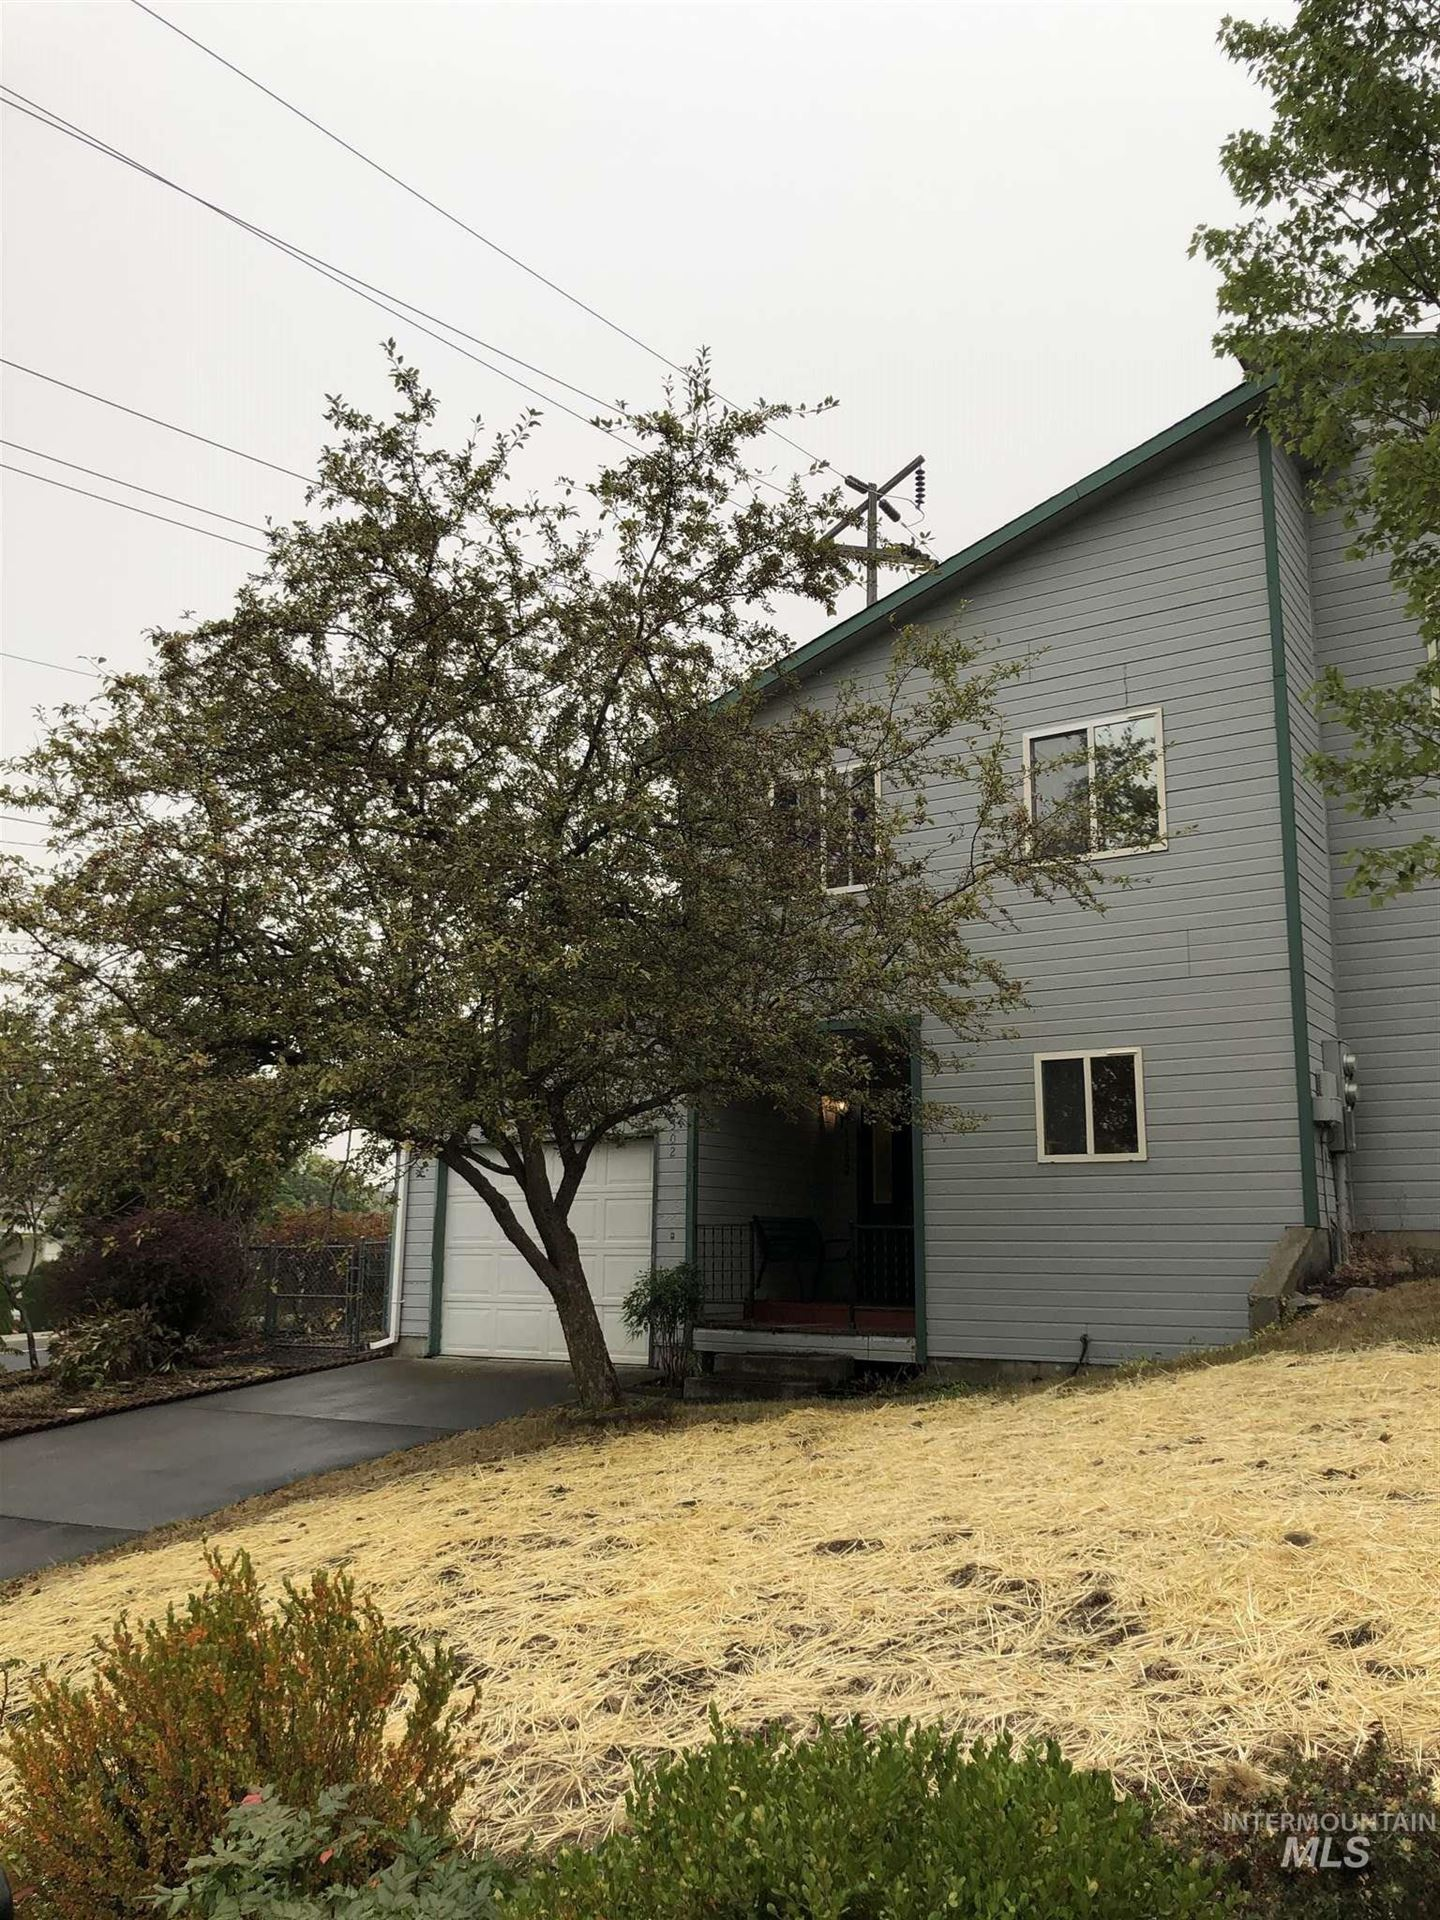 Photo of 1302 Andy, Moscow, ID 83843 (MLS # 98781580)